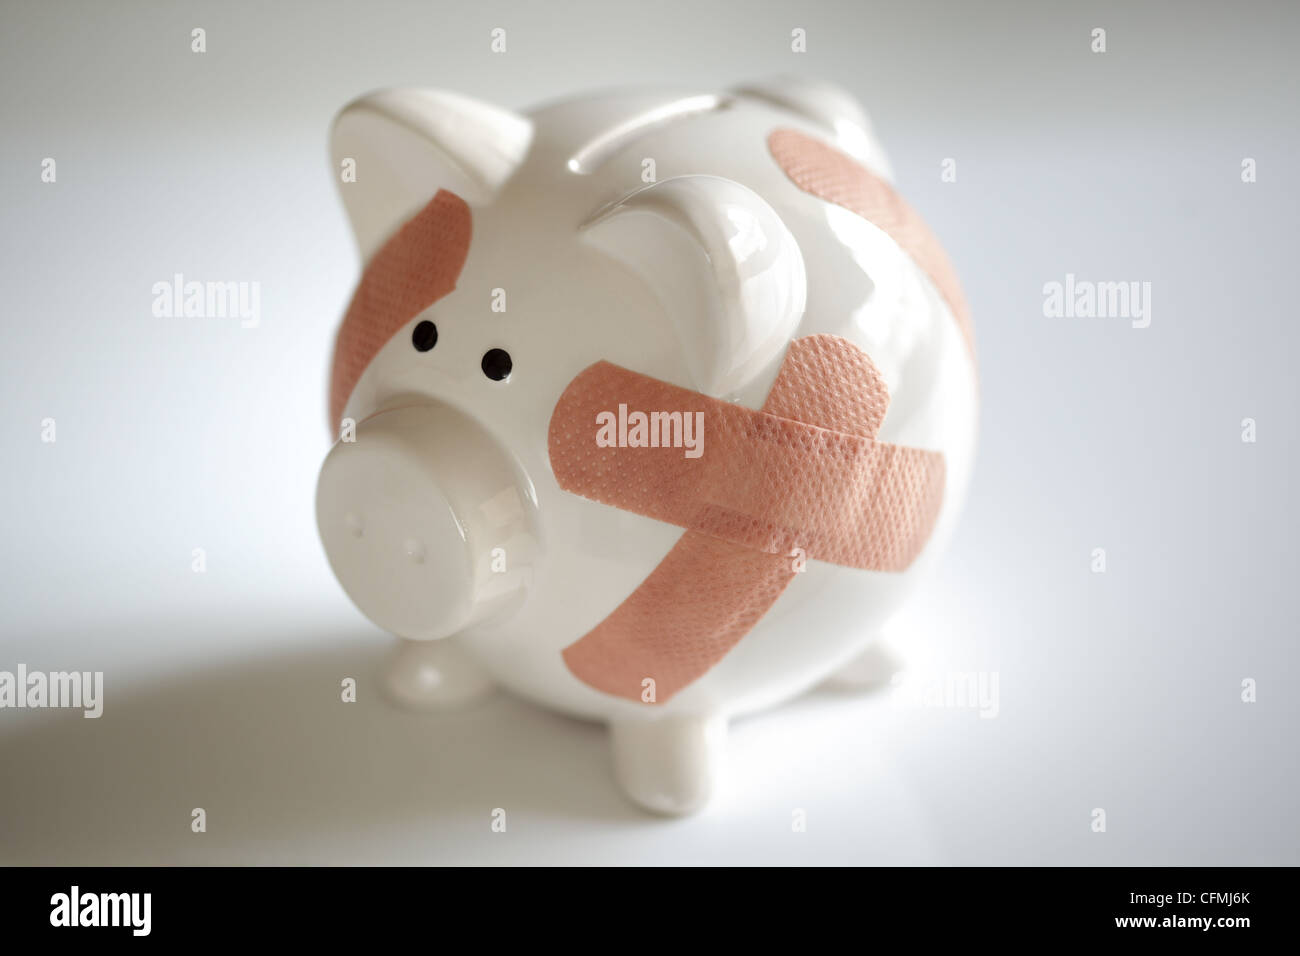 Piggy bank with band aids - Stock Image